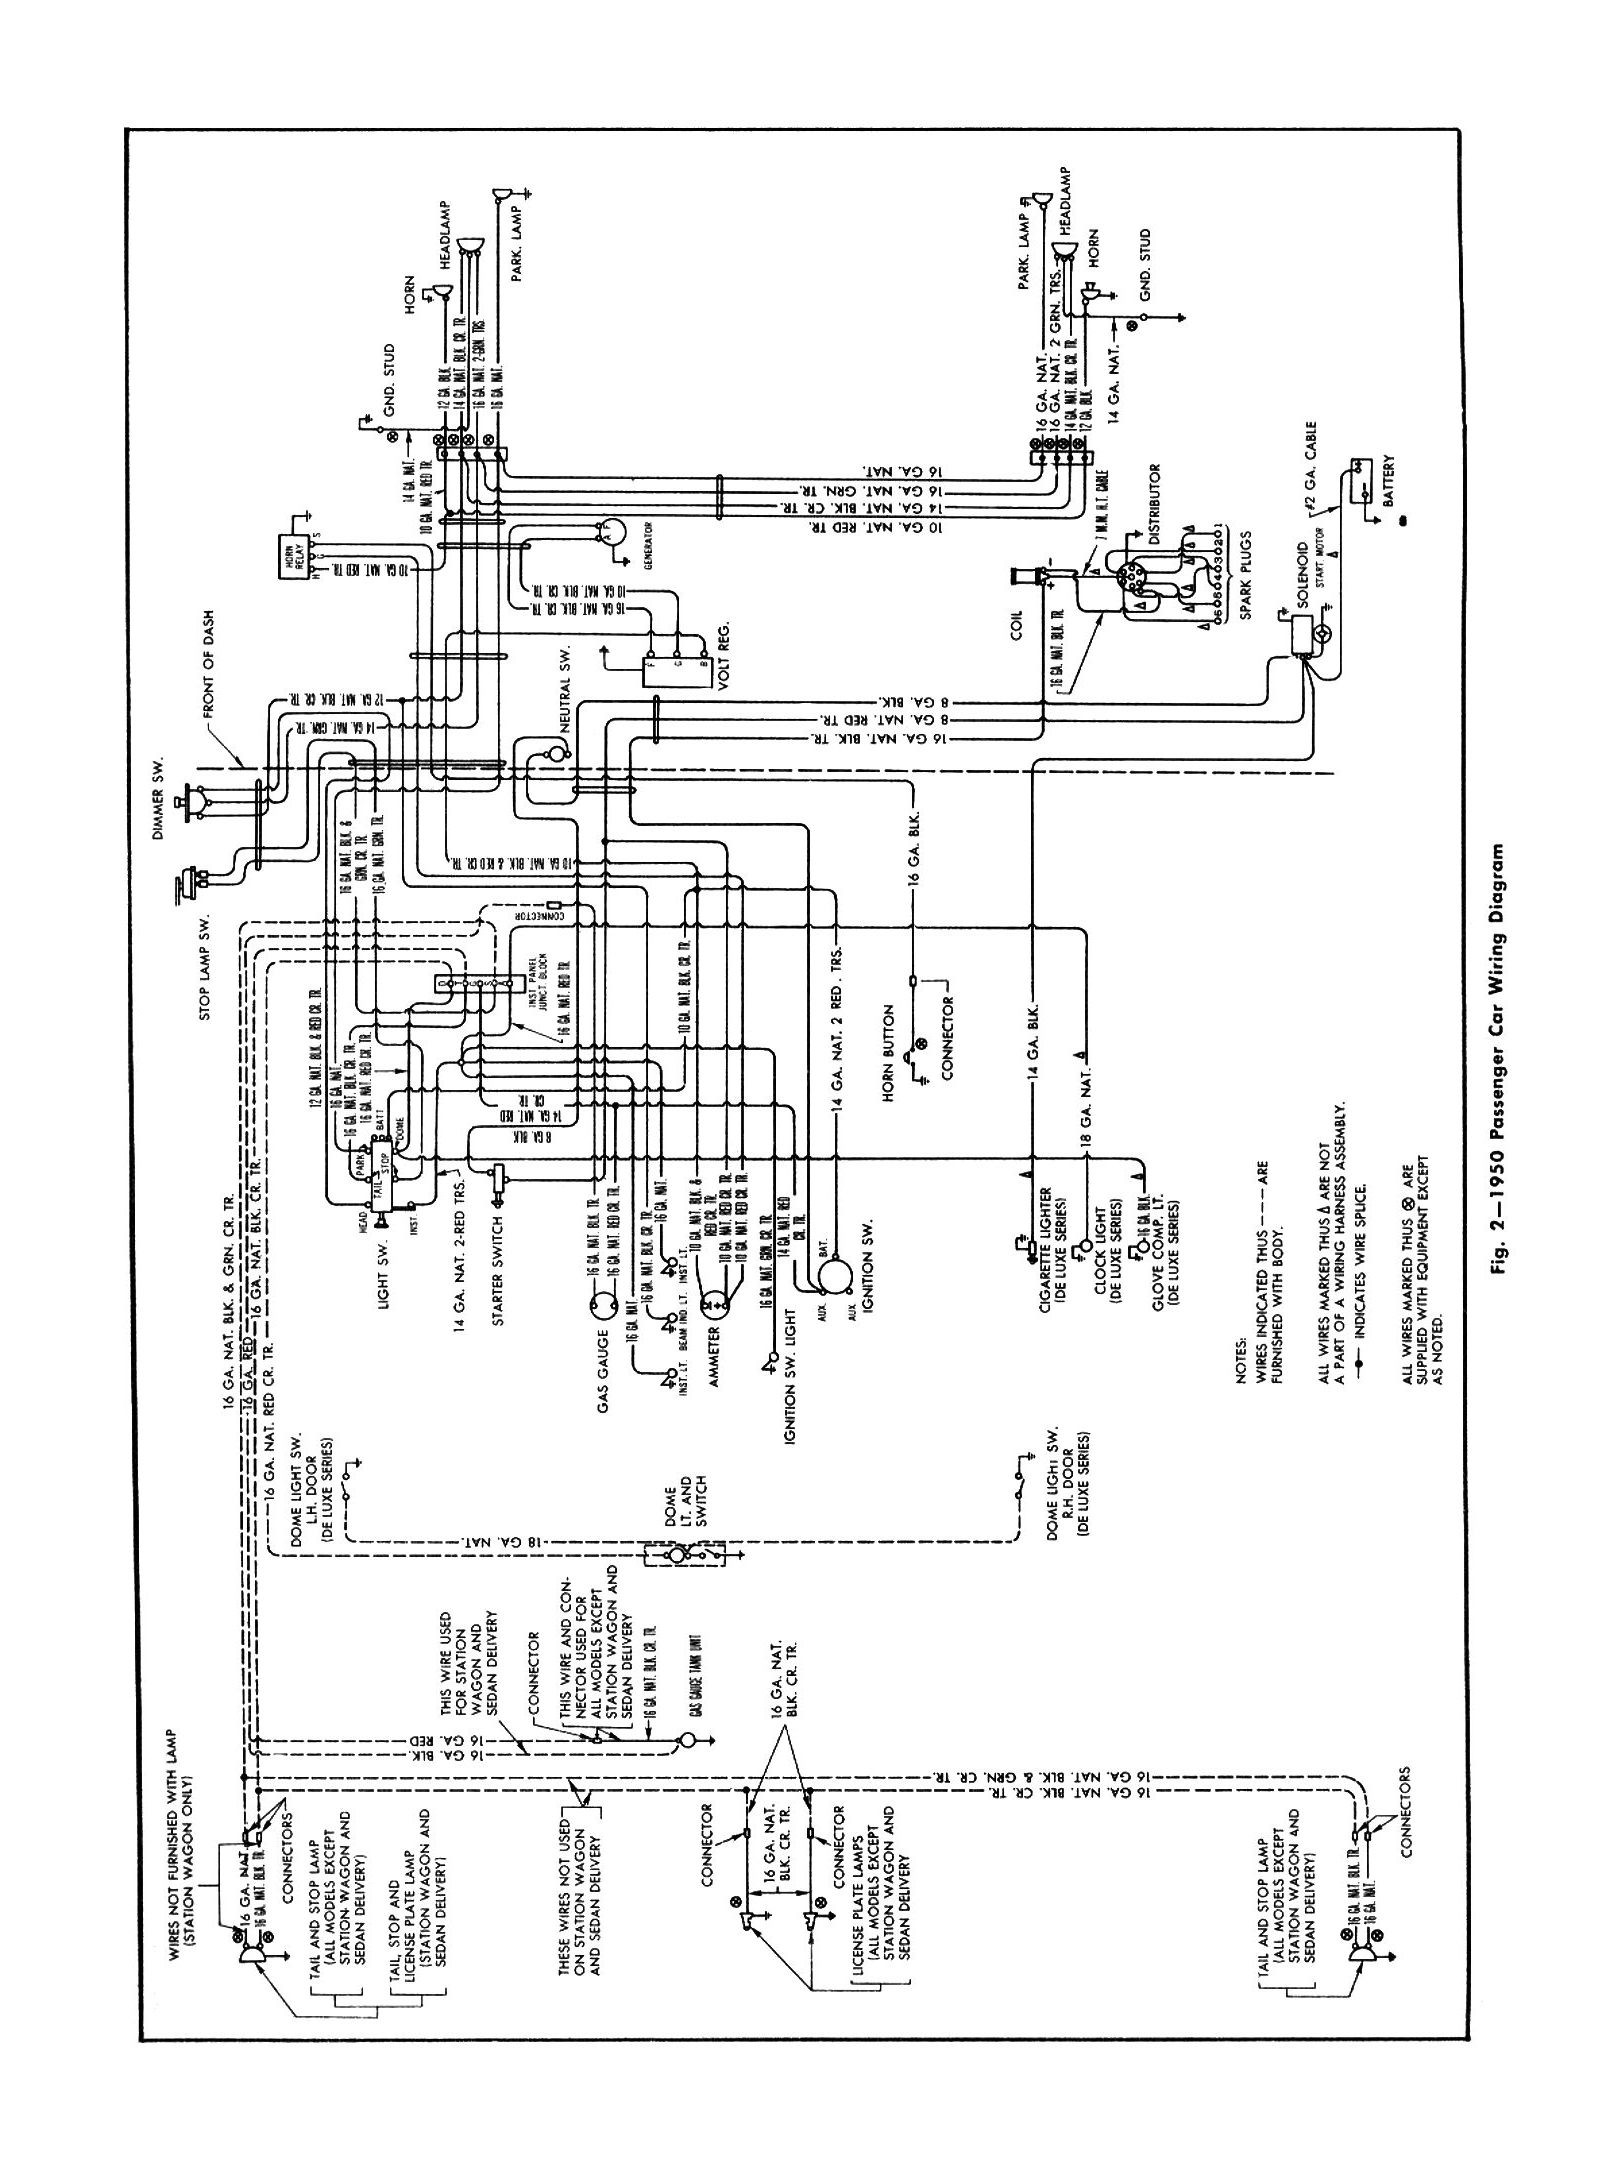 general wiring diagram wiring diagram 3-way switch wiring diagram 1949 international wiring diagram wiring diagram general electric ballast wiring diagram general wiring diagram